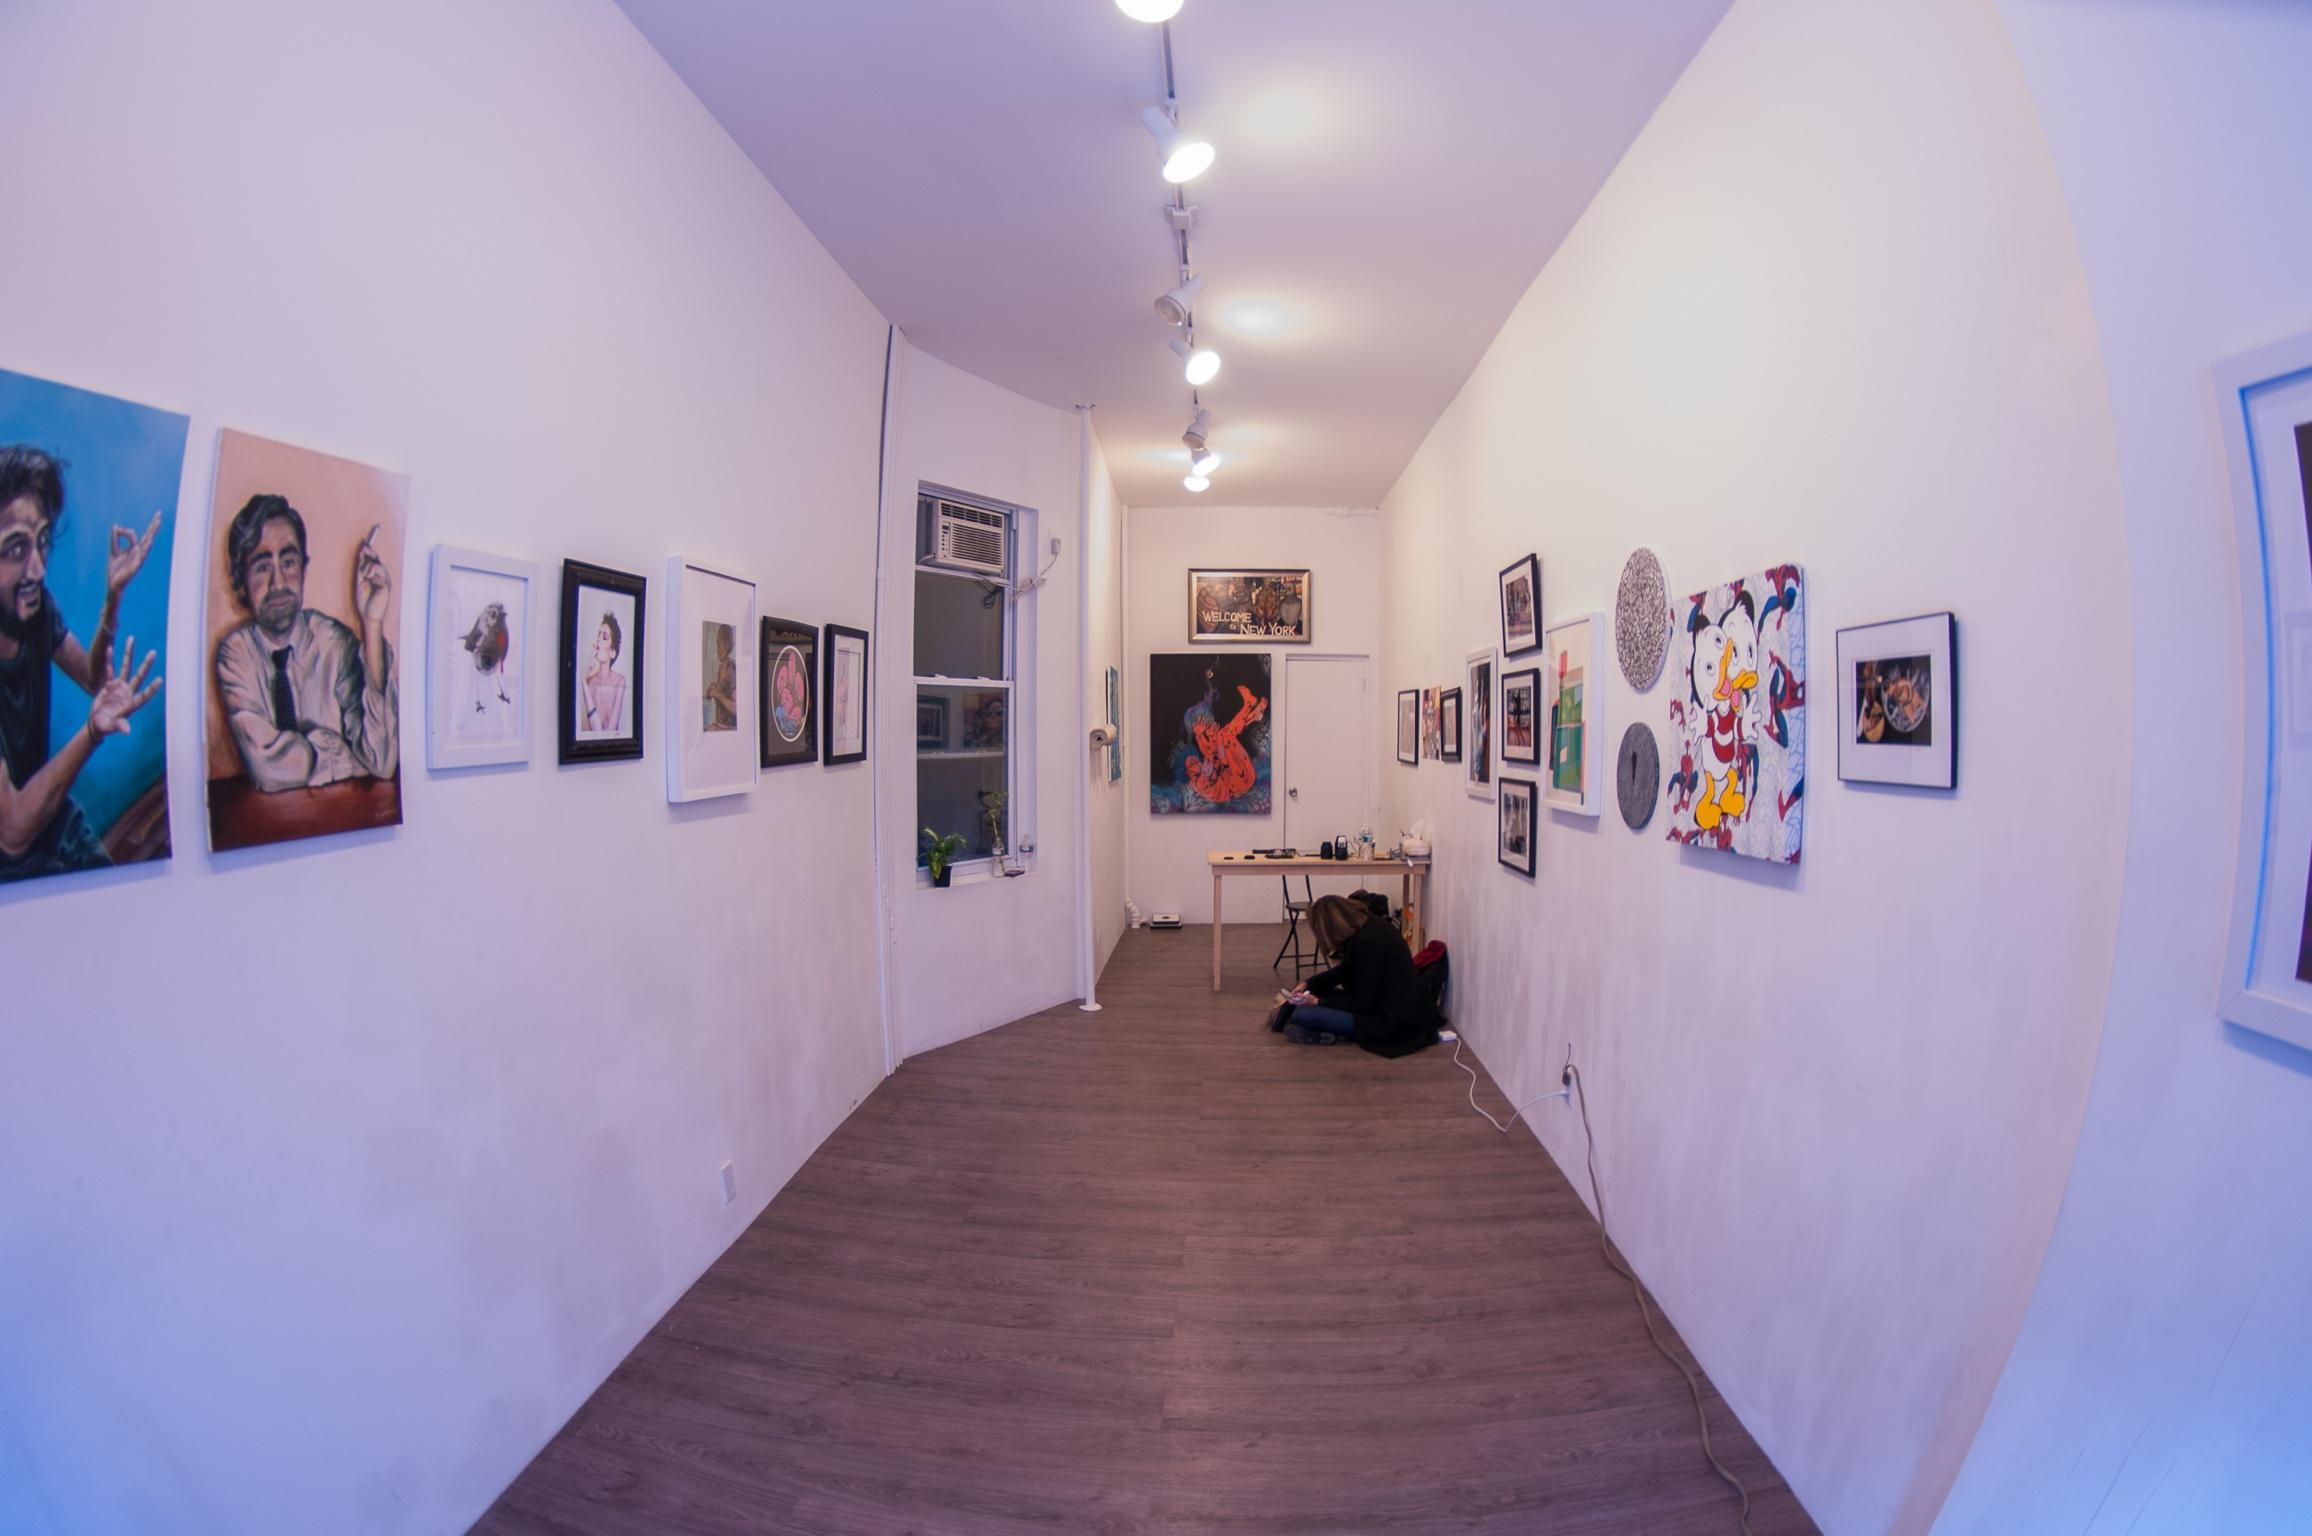 Venue profile for City Bird Gallery